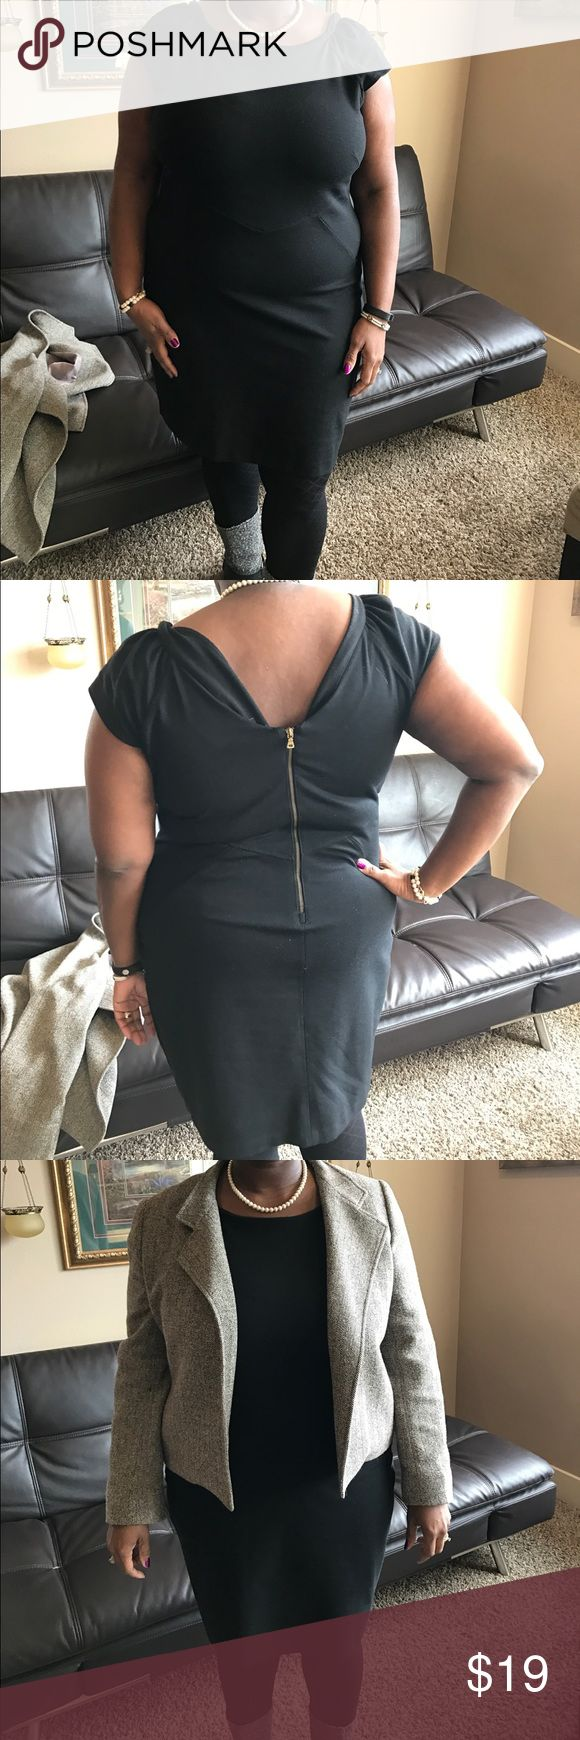 Little Black Dress Woman Clothes Very comfy. Mini black dress. Size 18. True to size. It has stretch. I wore while wearing between 18s and 20s GAP Dresses Mini